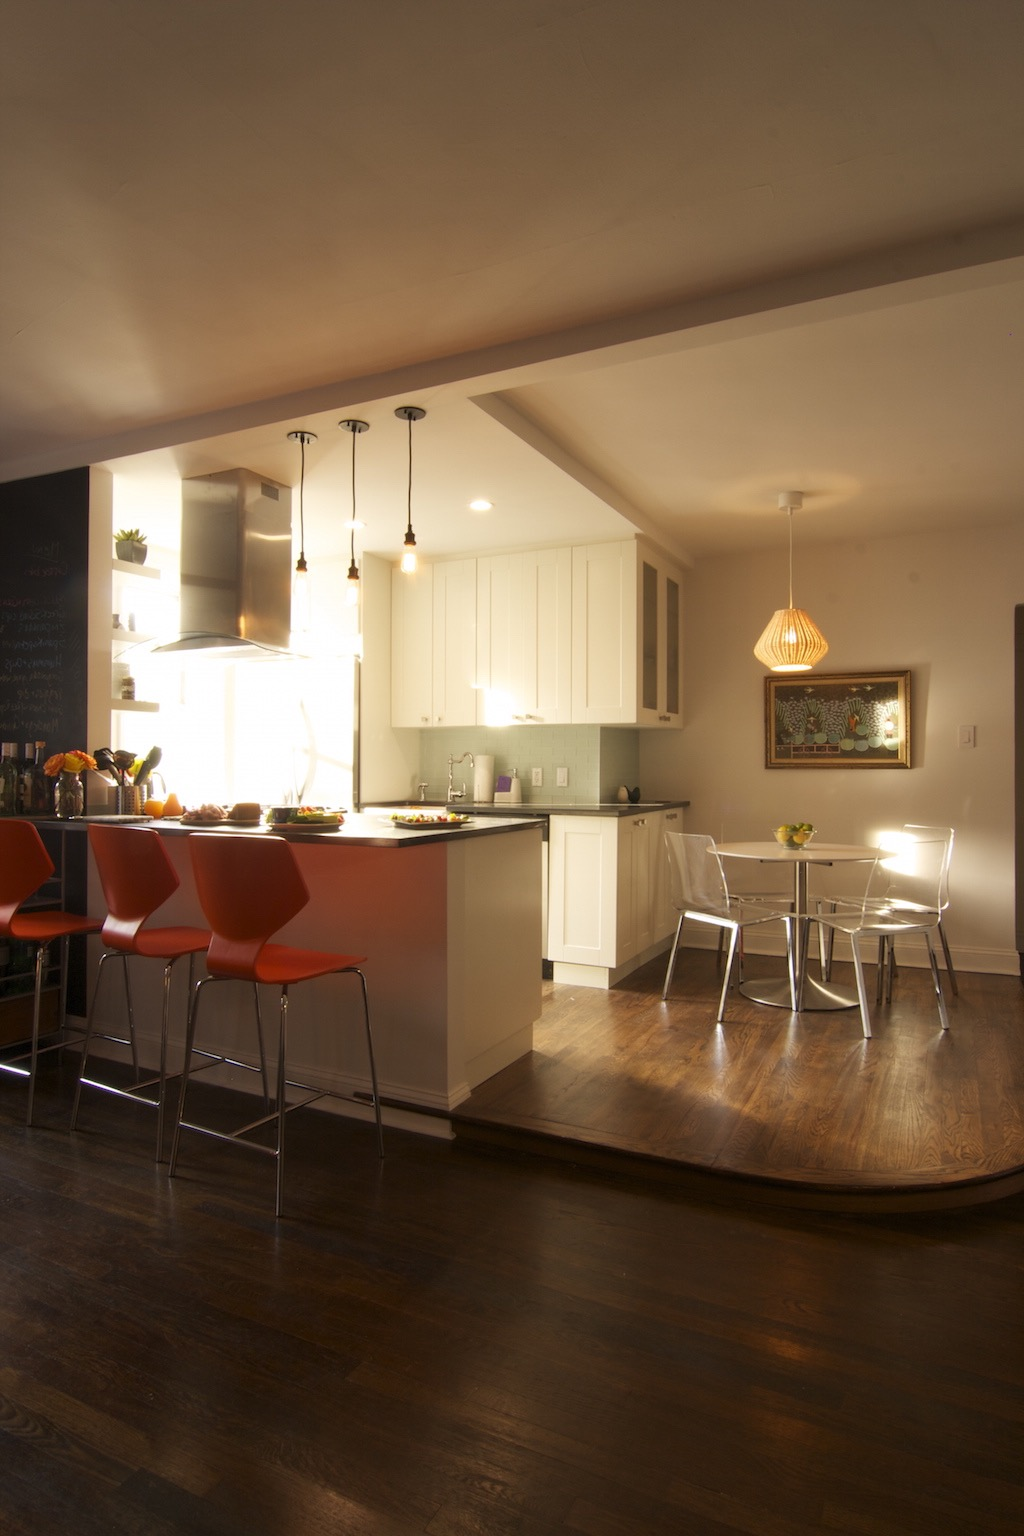 Modern Apartment Kitchen With Table And Bar (View 14 of 30)